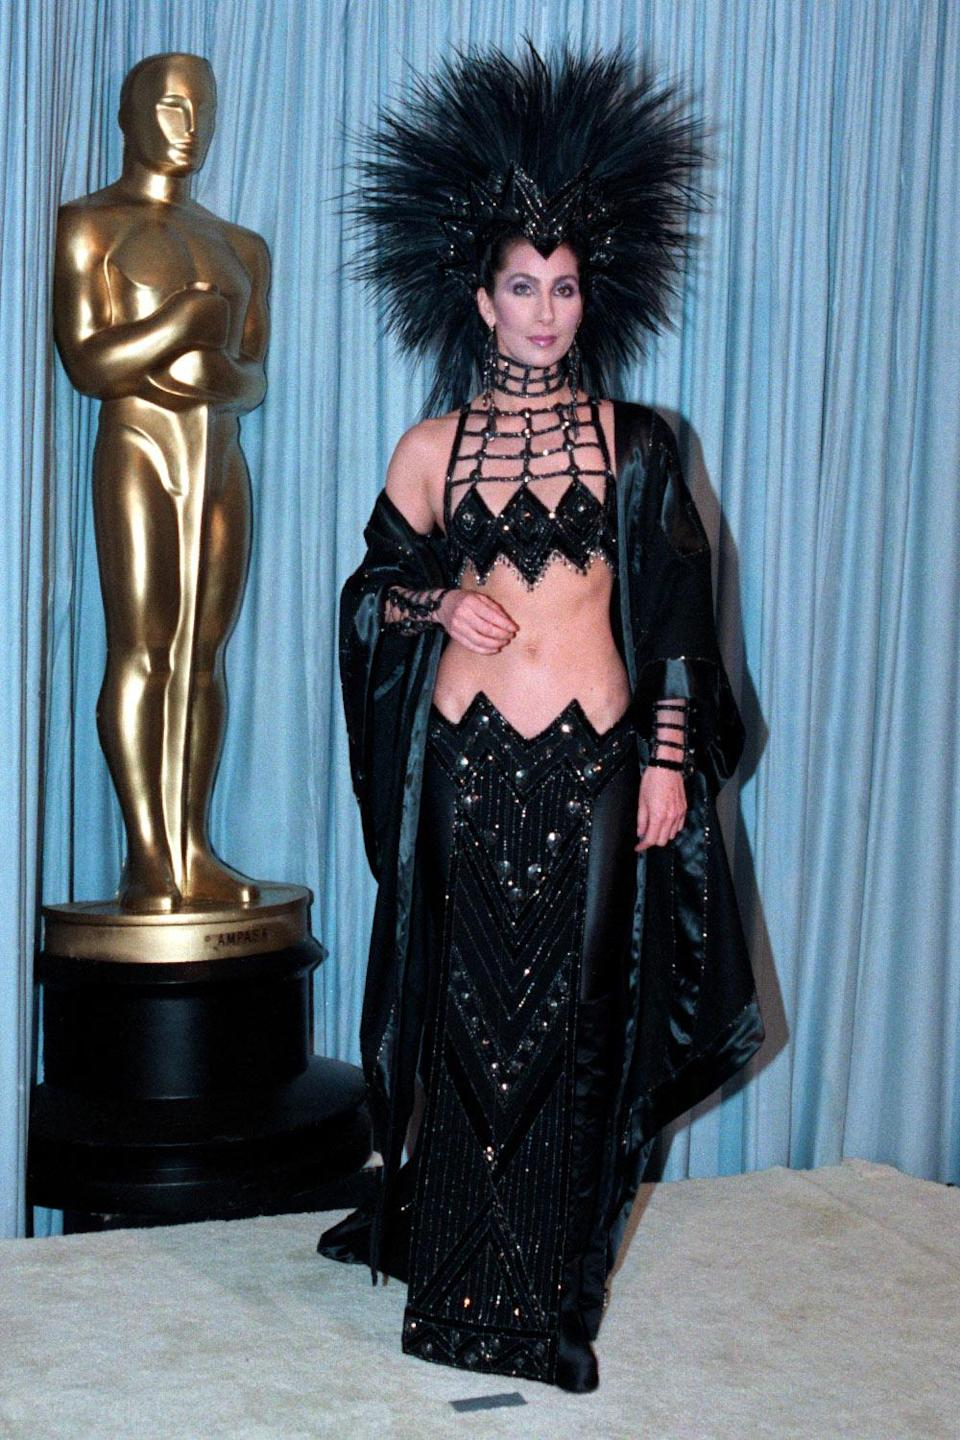 """<p>Cher infamously wore her controversial 1986 Oscar gown <a href=""""https://people.com/style/cher-says-she-wore-her-controversial-1986-oscars-gown-to-send-a-message-to-the-academy/"""" rel=""""nofollow noopener"""" target=""""_blank"""" data-ylk=""""slk:to spite the Academy"""" class=""""link rapid-noclick-resp"""">to spite the Academy</a>, and accidentally landed herself on the list of most amazing Oscar dresses of all time! </p>"""